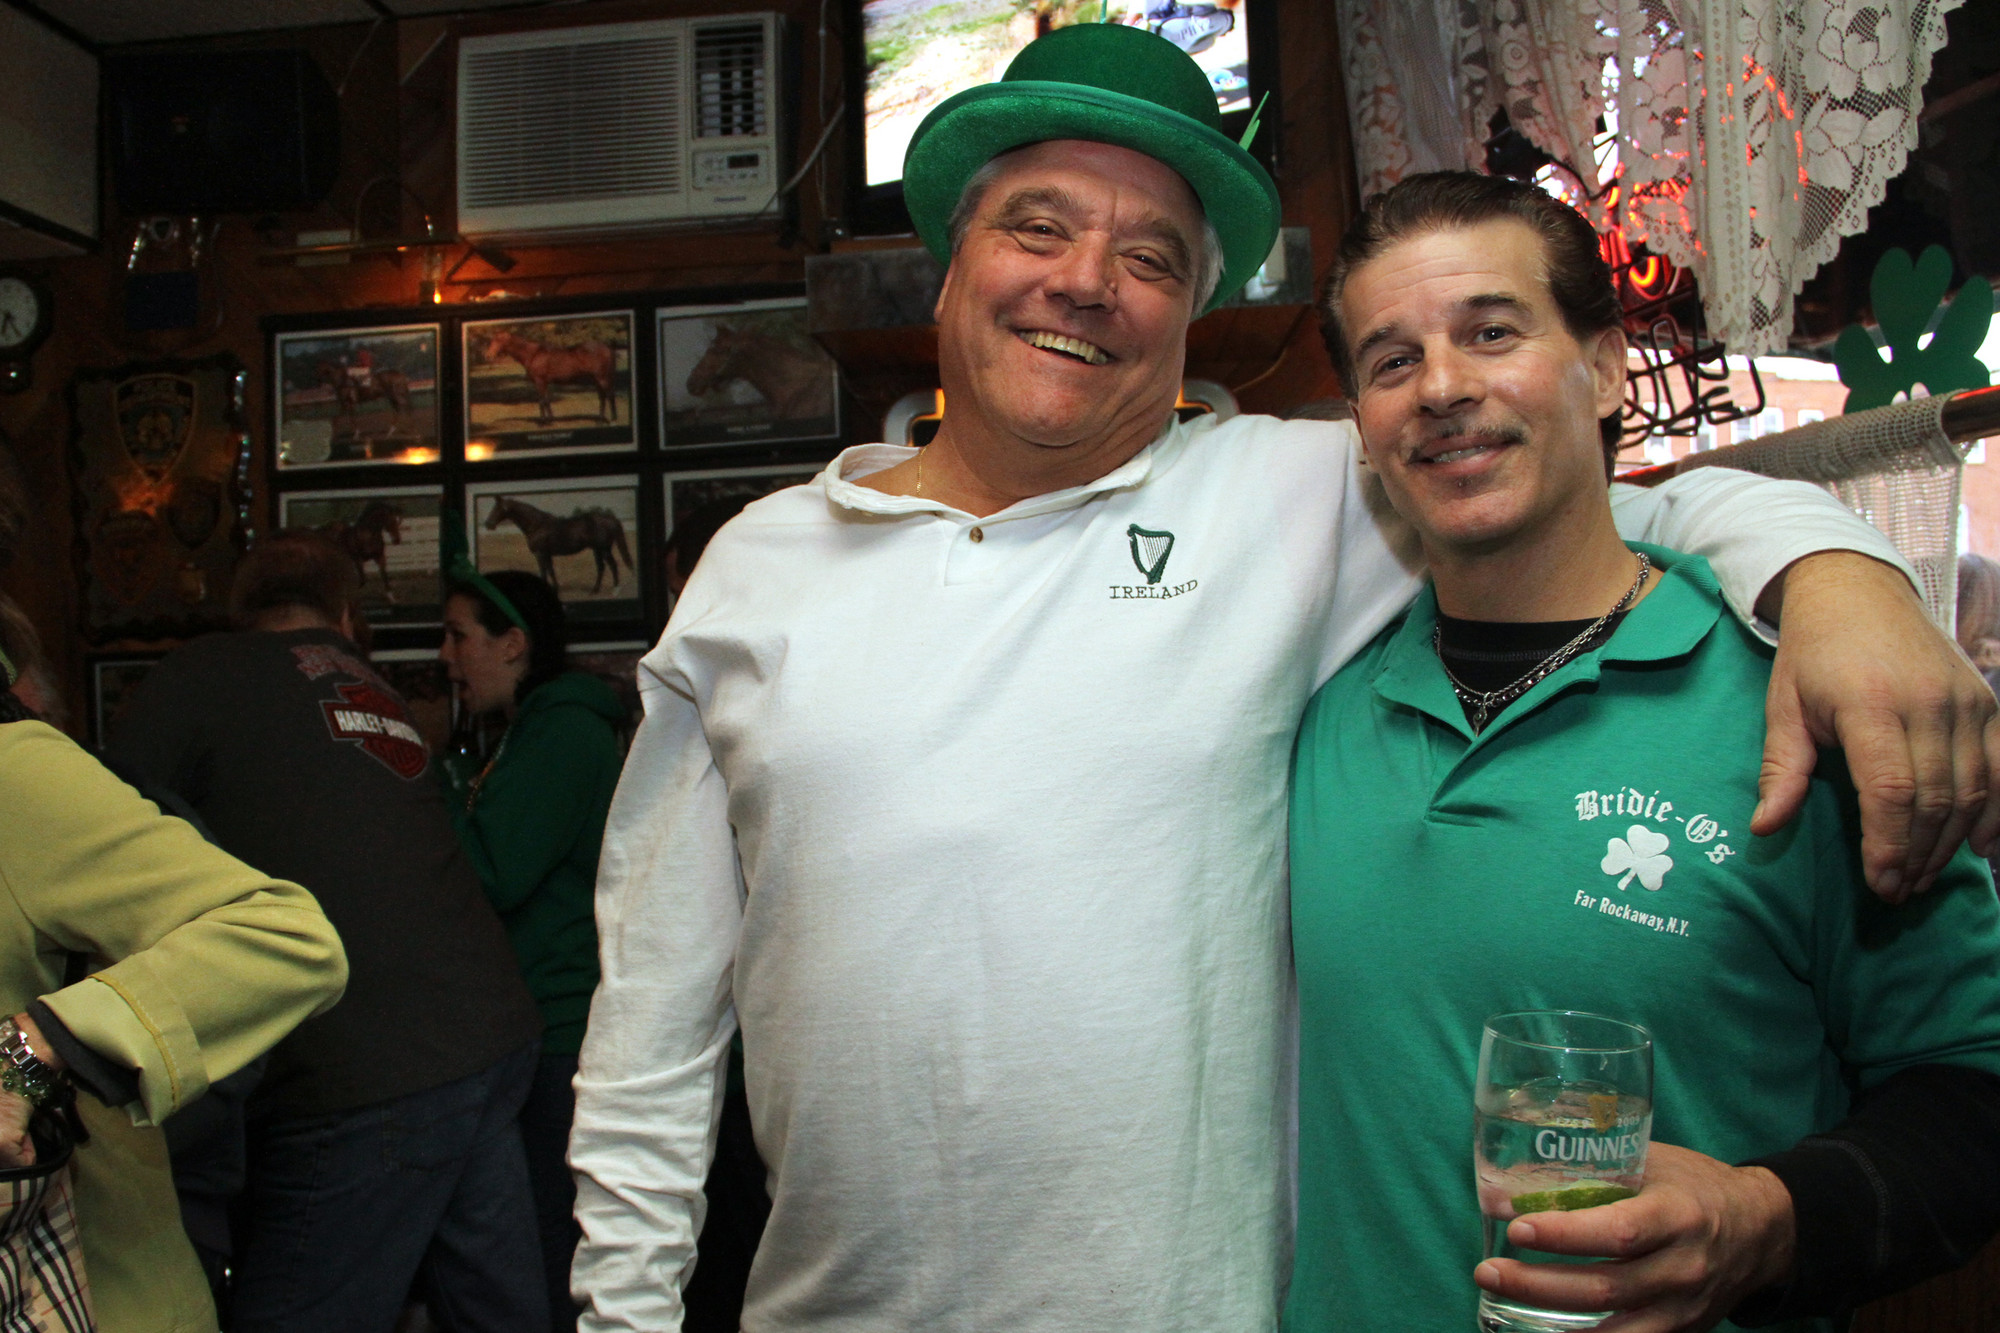 St. Patrick's Day was celebrated at Bridie O's bar on Central Avenue in Lawrence. Tony Zummo, left, and Stephen Valenti showed off their Irish halves.